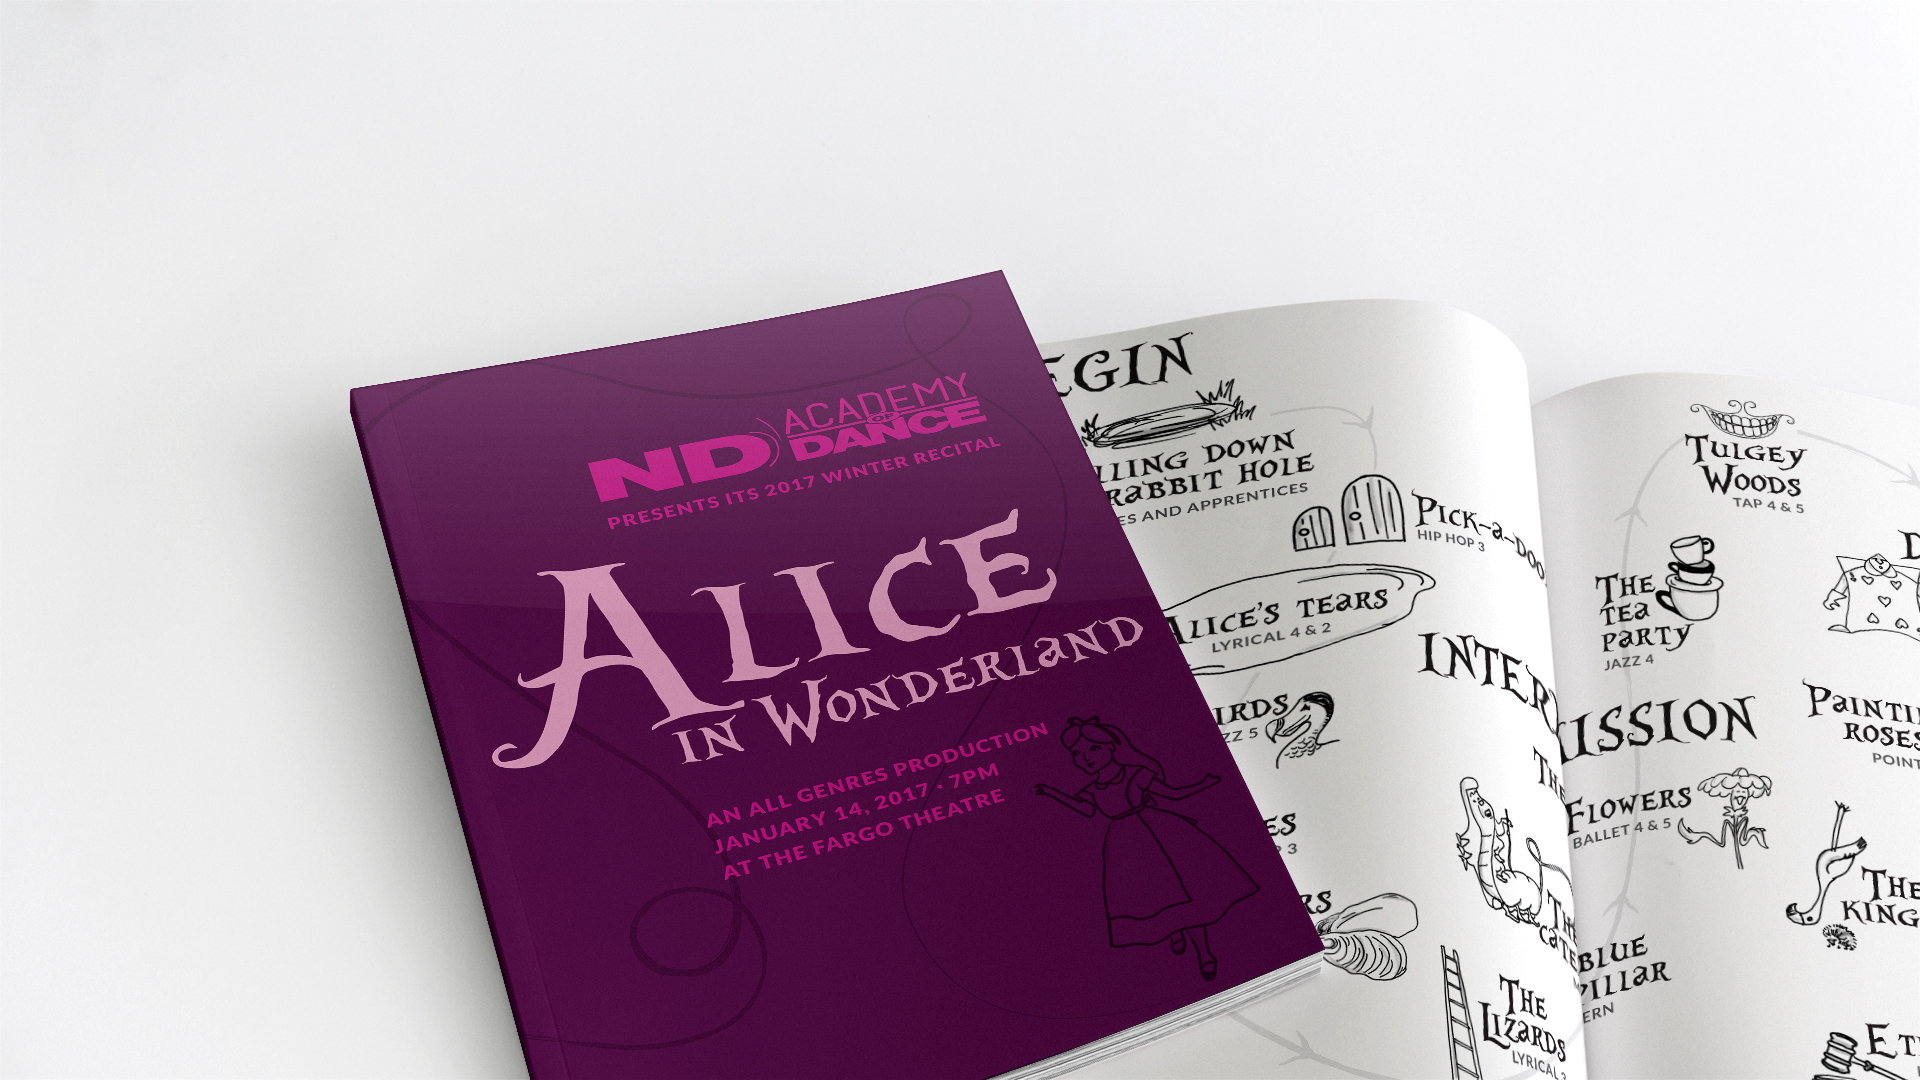 Alice in Wonderland program cover laying on top of open program on white surface